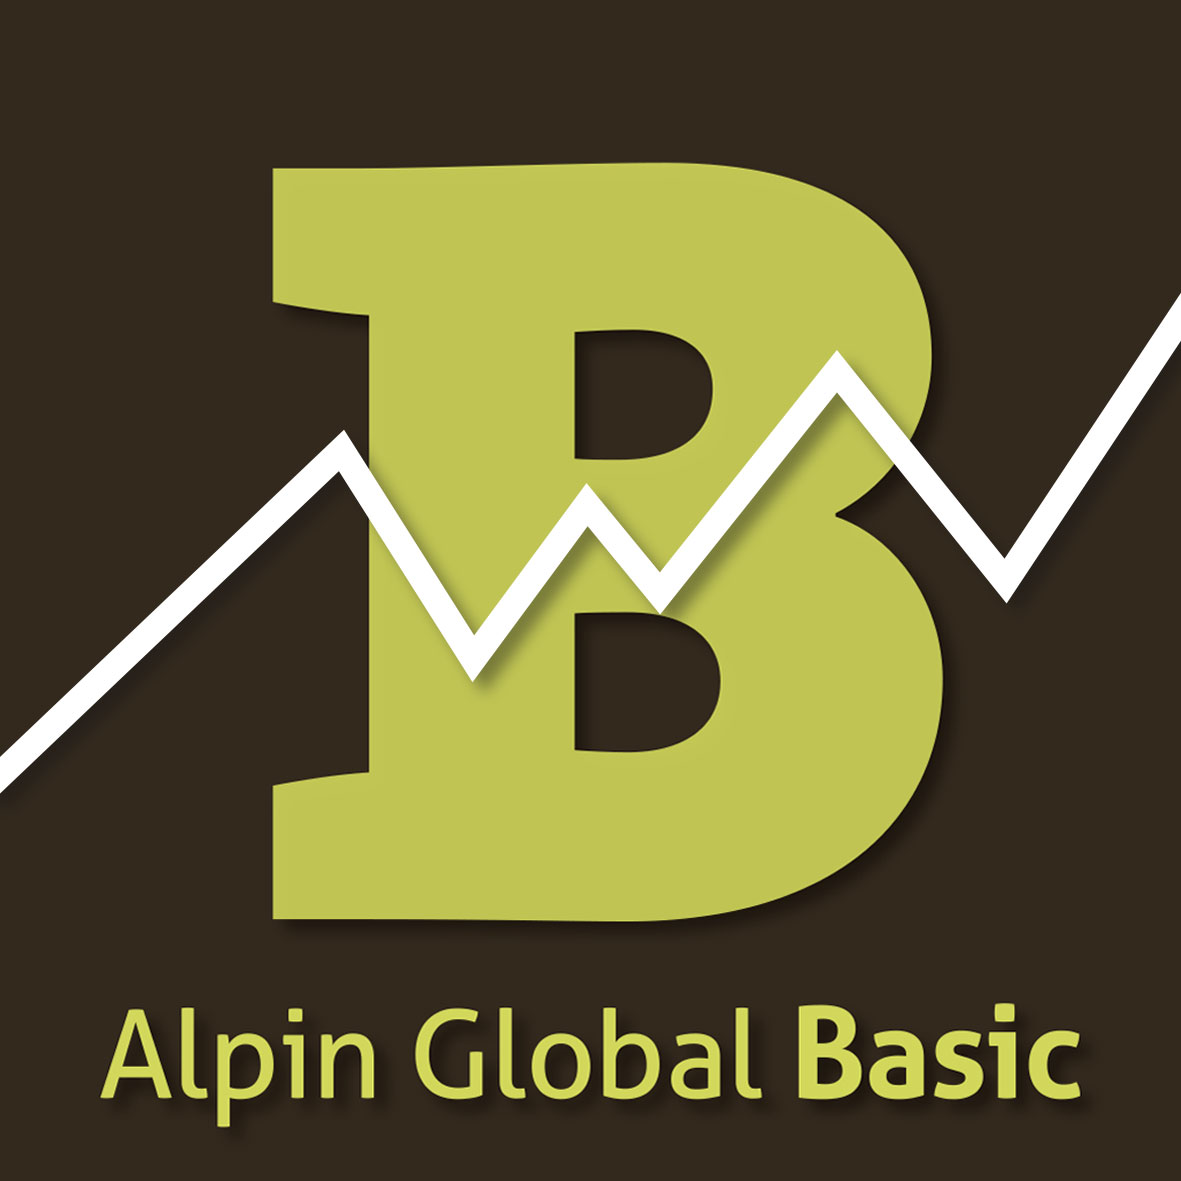 Alpin Global Basic